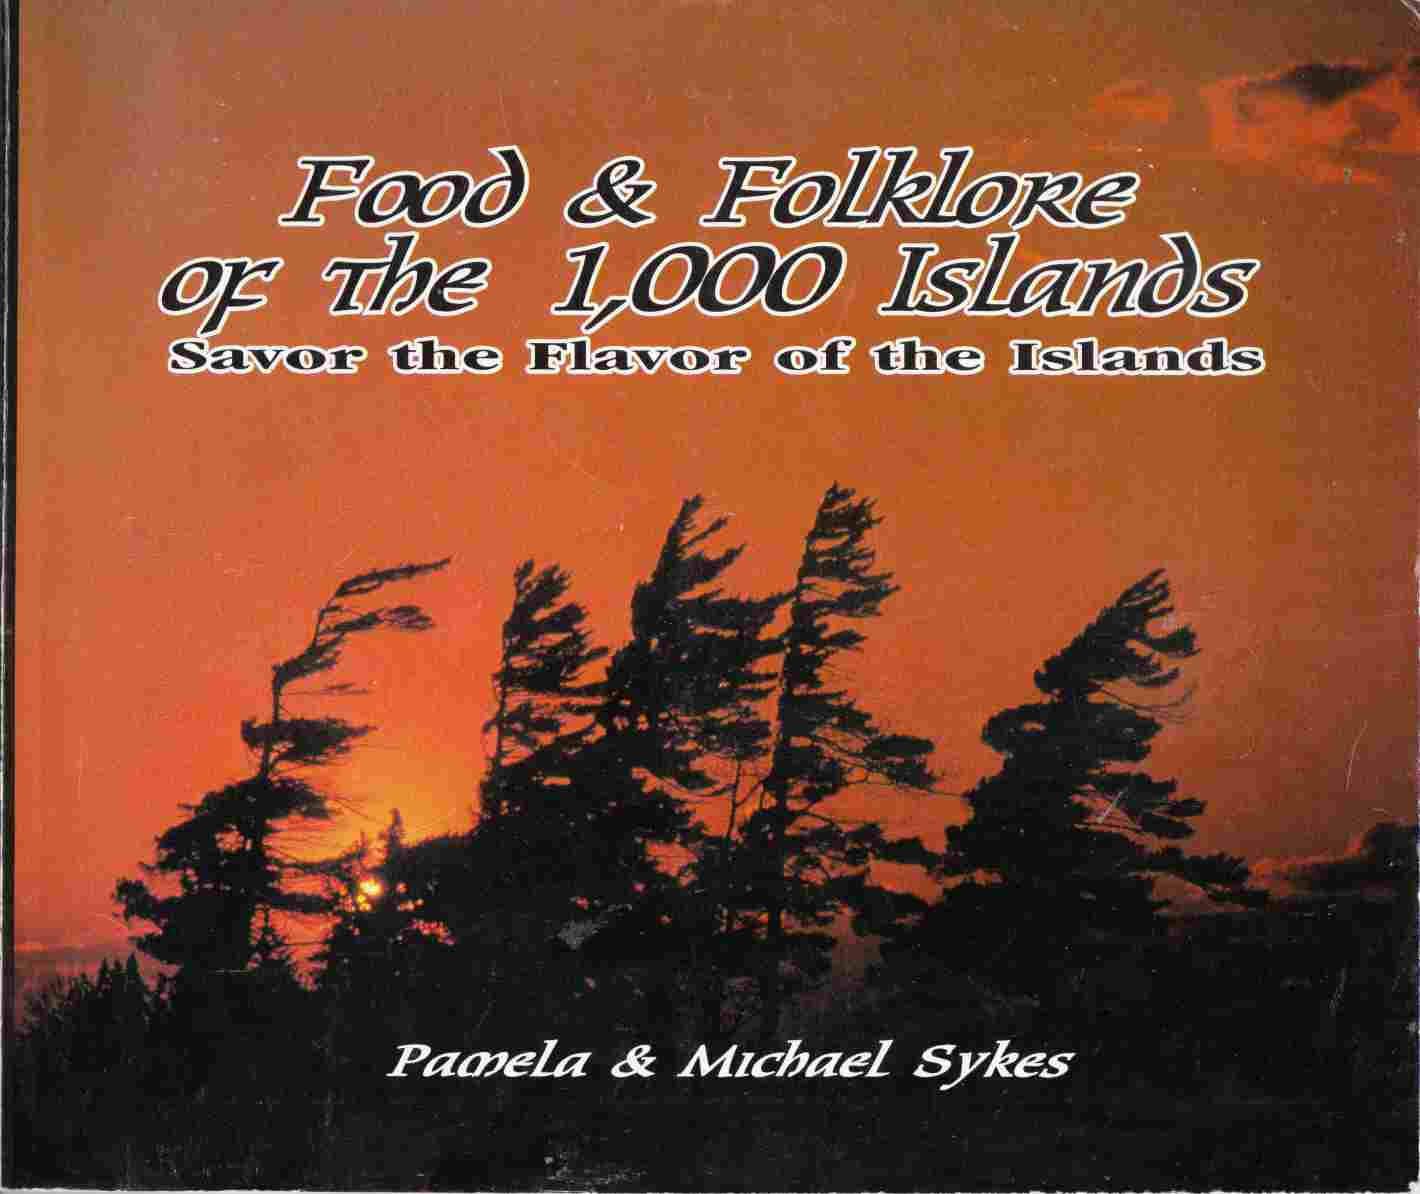 Image for Food and Folklore of the 1000 Islands : Savor the Flavor of the Islands